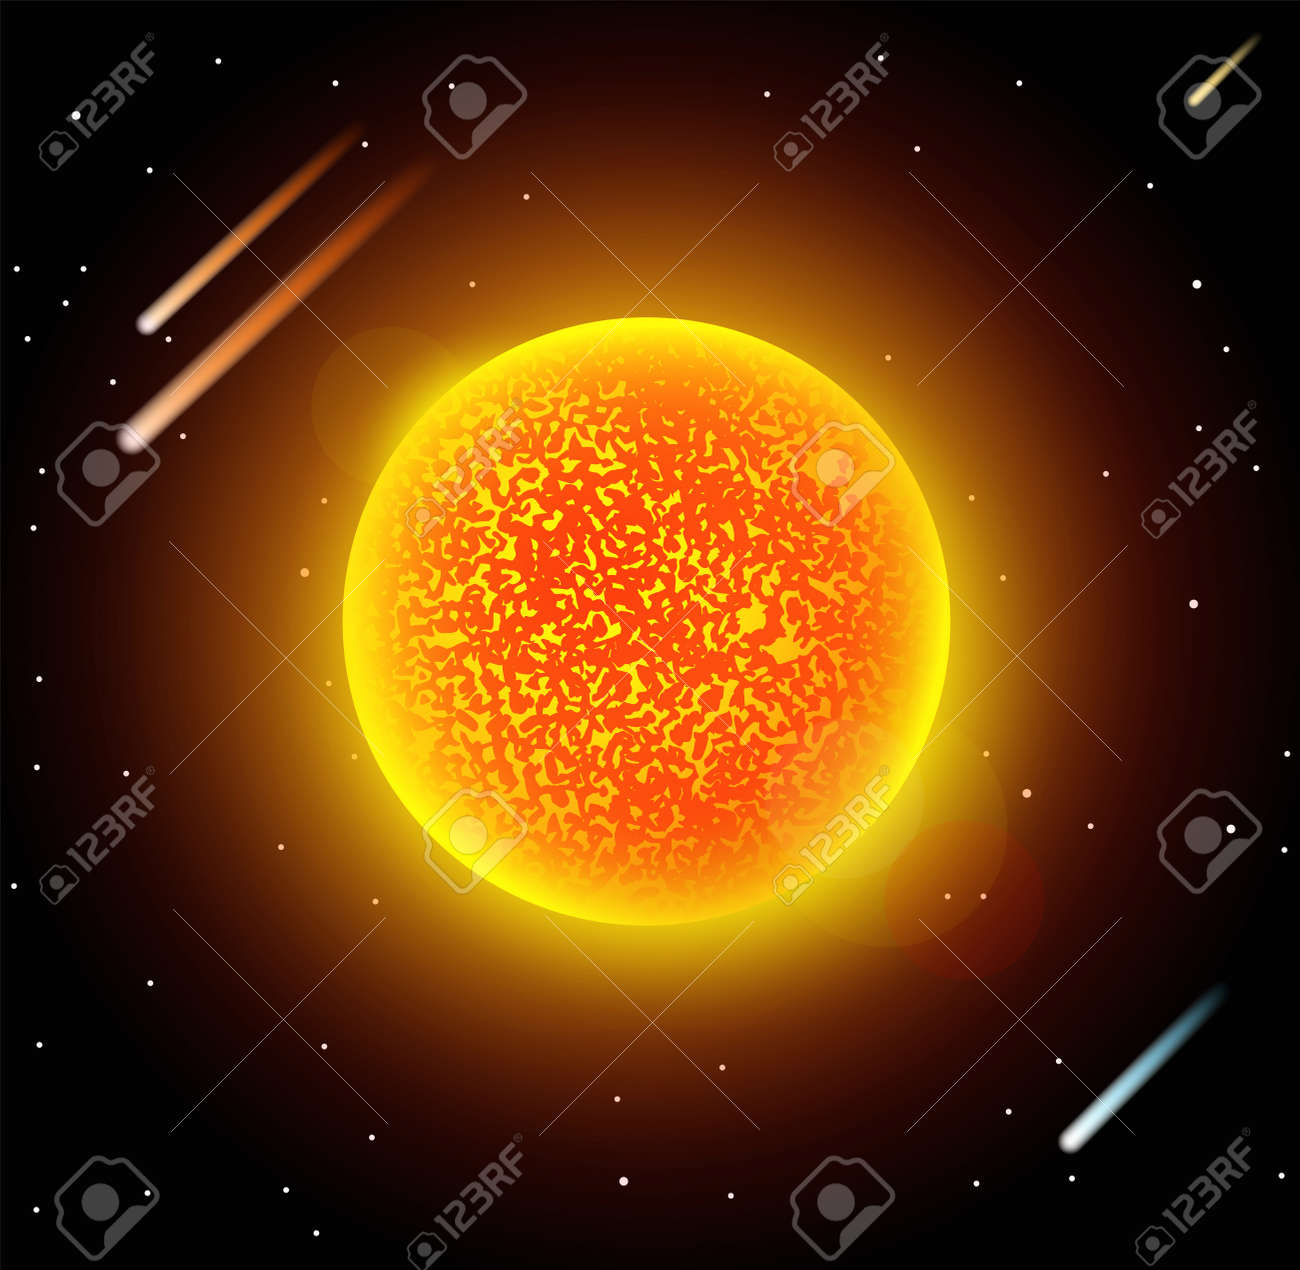 Sun star planet 3d vector illustration globe sun star texture sun star planet 3d vector illustration globe sun star texture map globe vector sun gumiabroncs